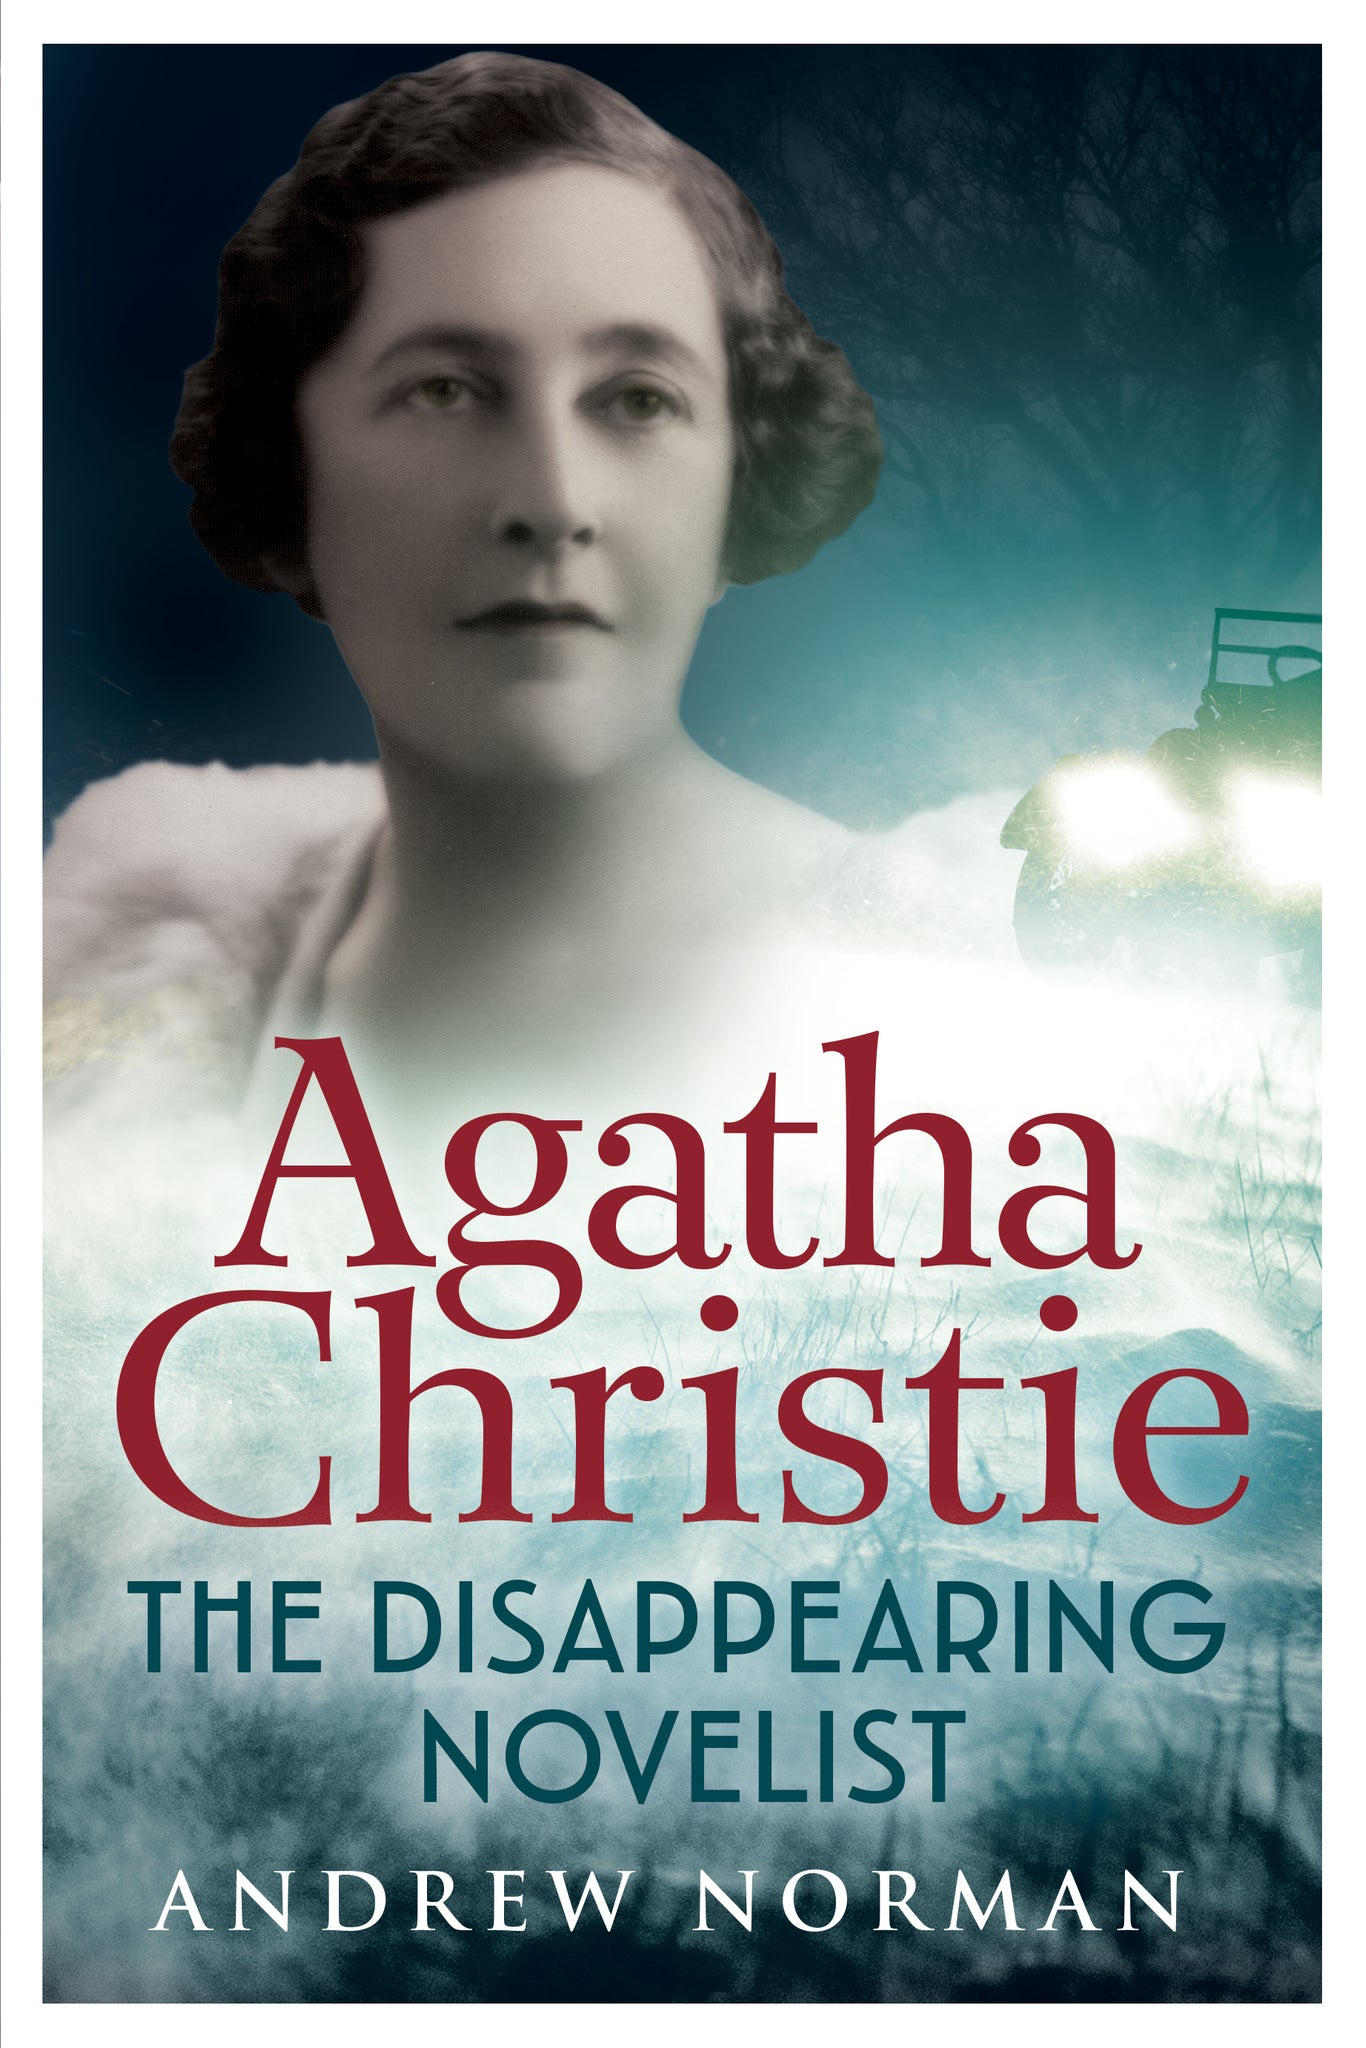 Agatha Christie: The Disappearing Novelist - available now from Fonthill Media